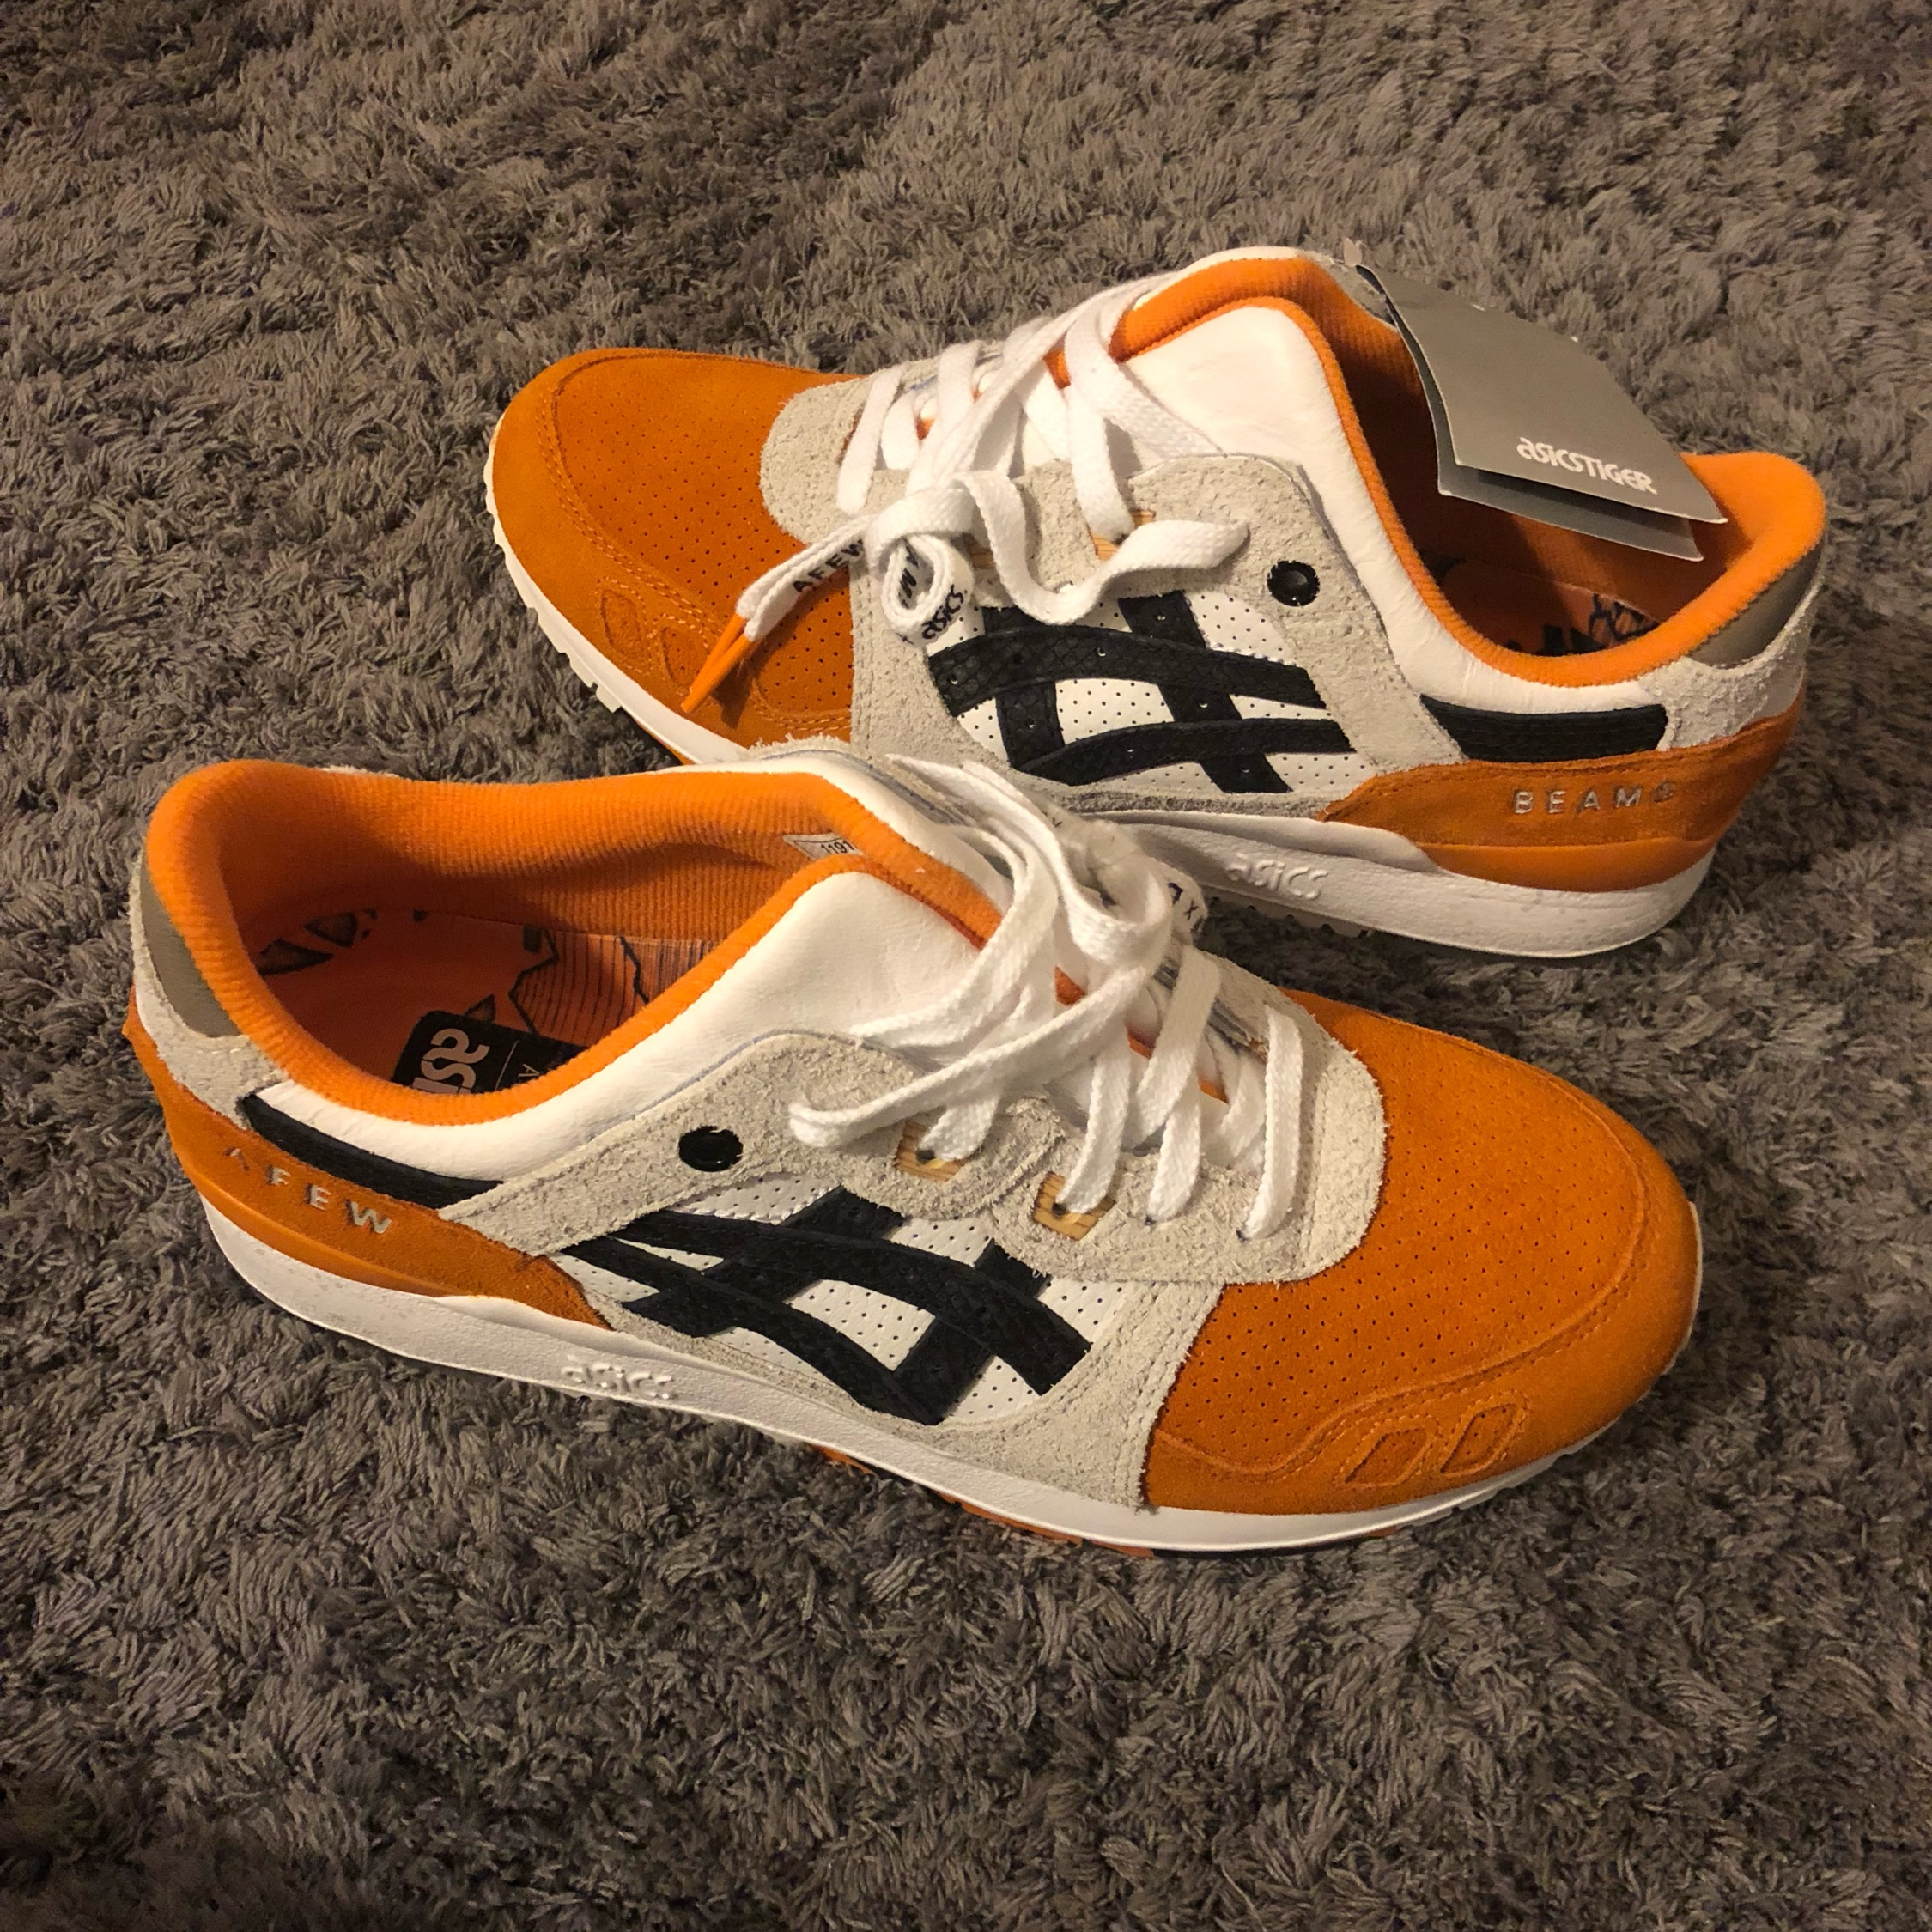 lace up in 100% top quality sports shoes Asics Orange Koi X Afew X Beams